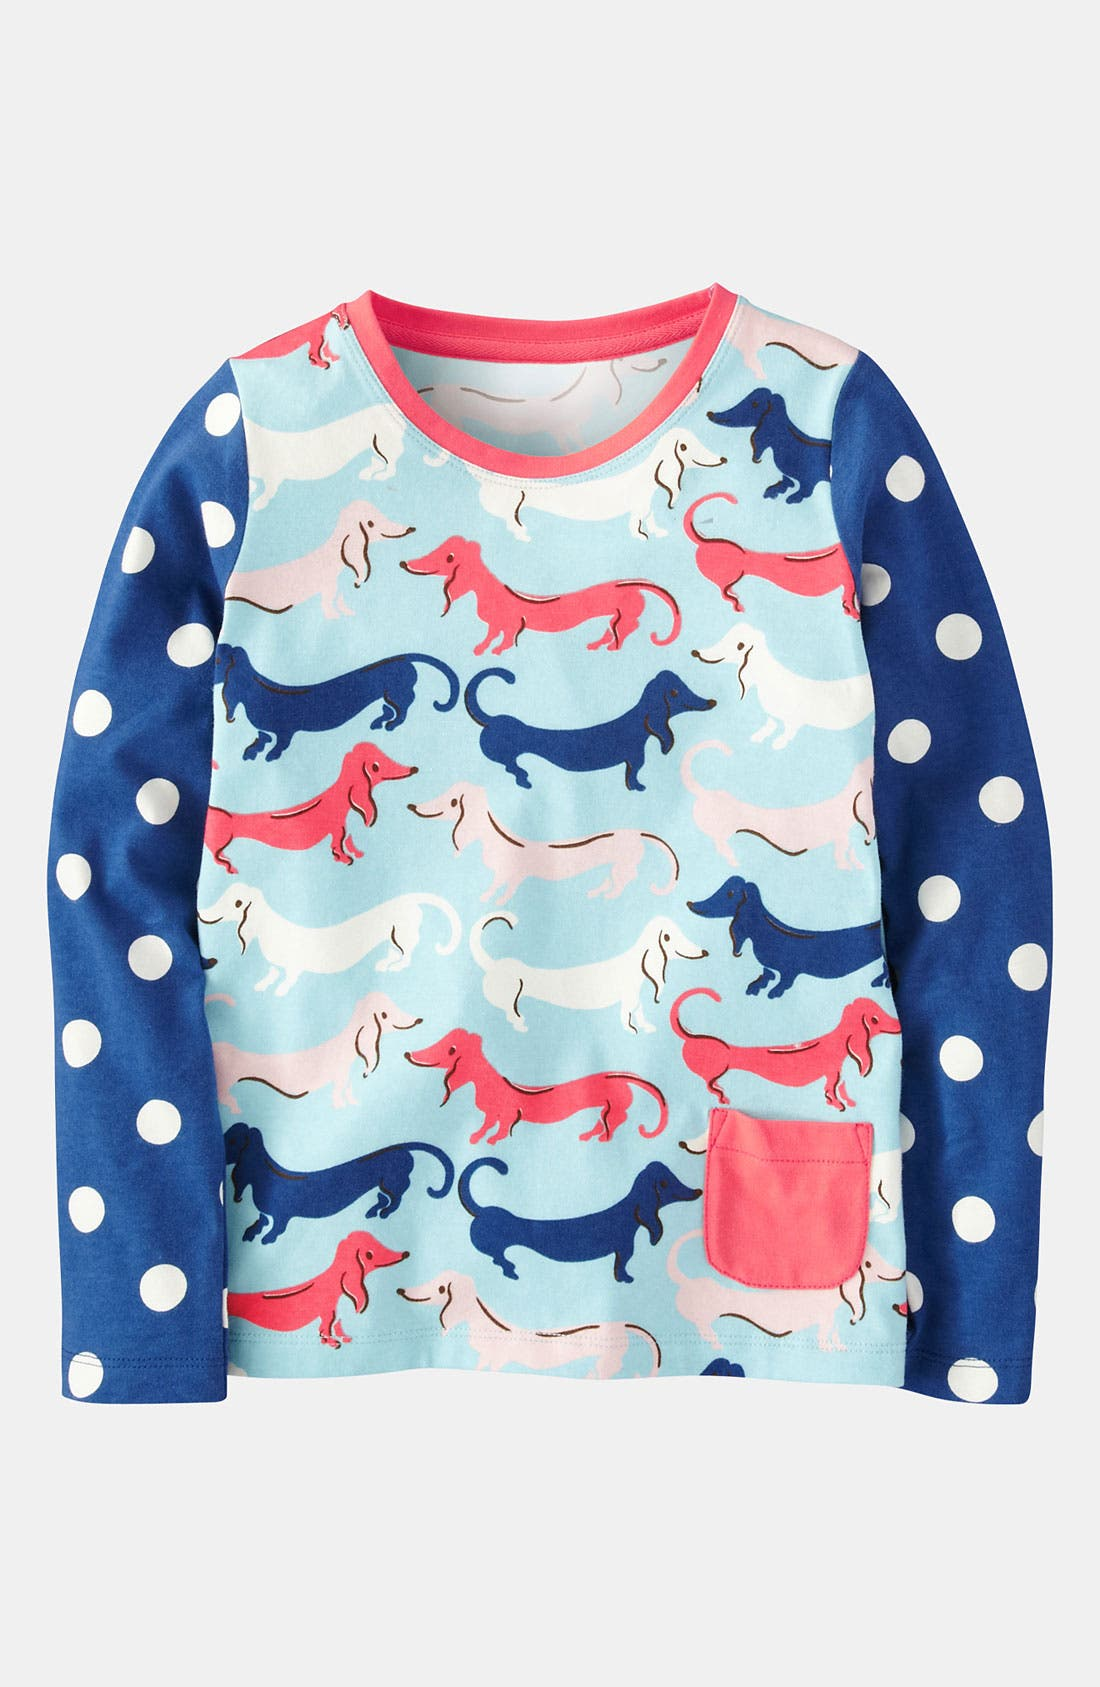 Alternate Image 1 Selected - Mini Boden 'Hotchpotch' Tee (Toddler)